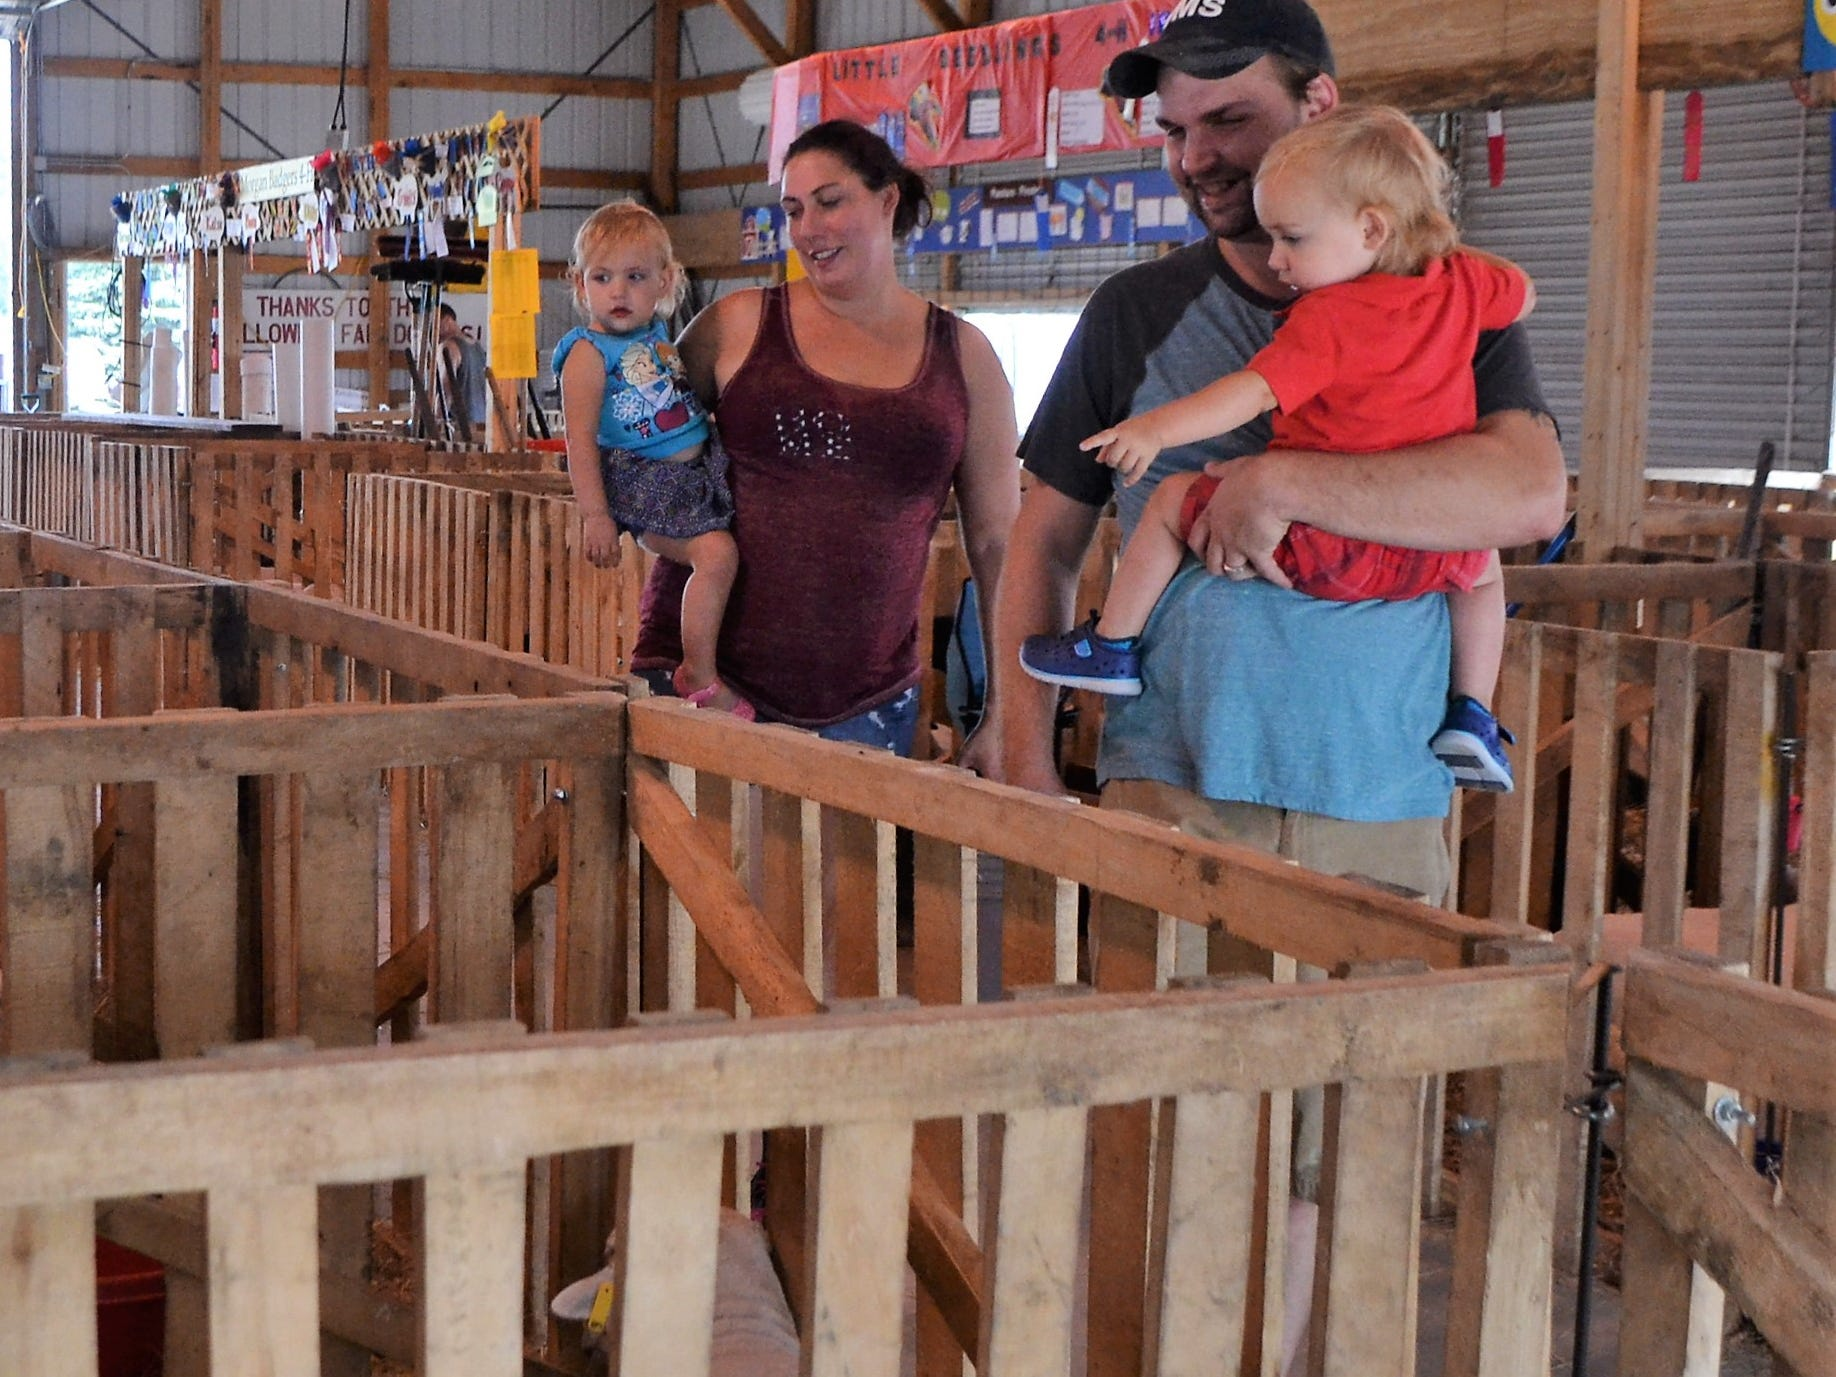 Grace and Brandon DeCremer of Shawano took their 1-1/2-year-old twins, Delaney and Dylan, to see the animals at the Oconto County Fair on Saturday, Aug. 18.